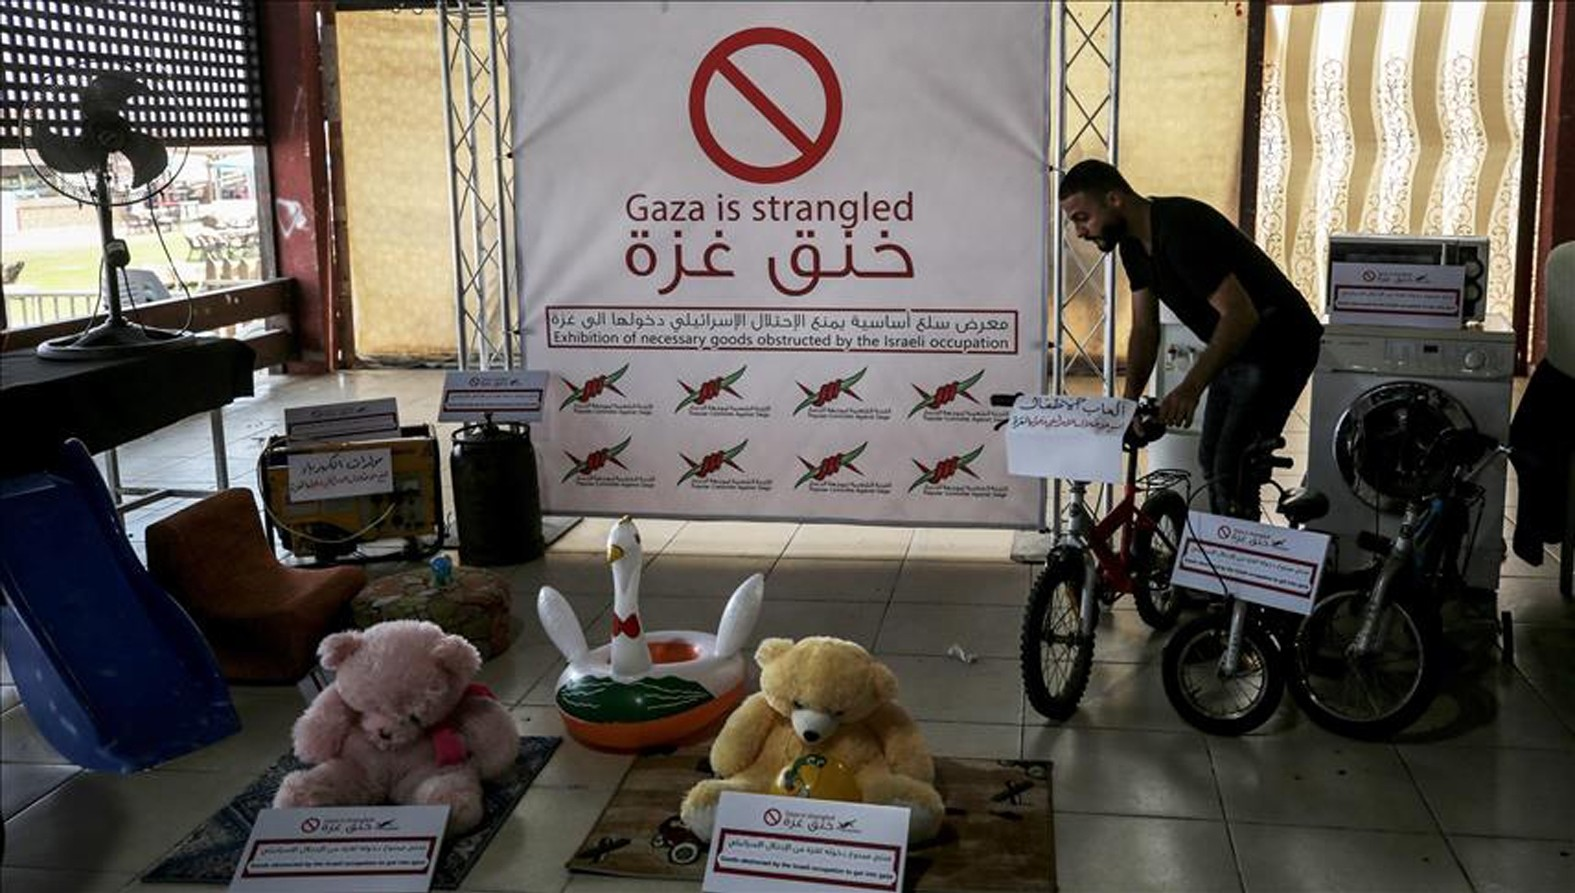 Childrenu2019s toys are displayed in the exhibition in Gaza, showing basic materials banned due to Israelu2019s blockade.